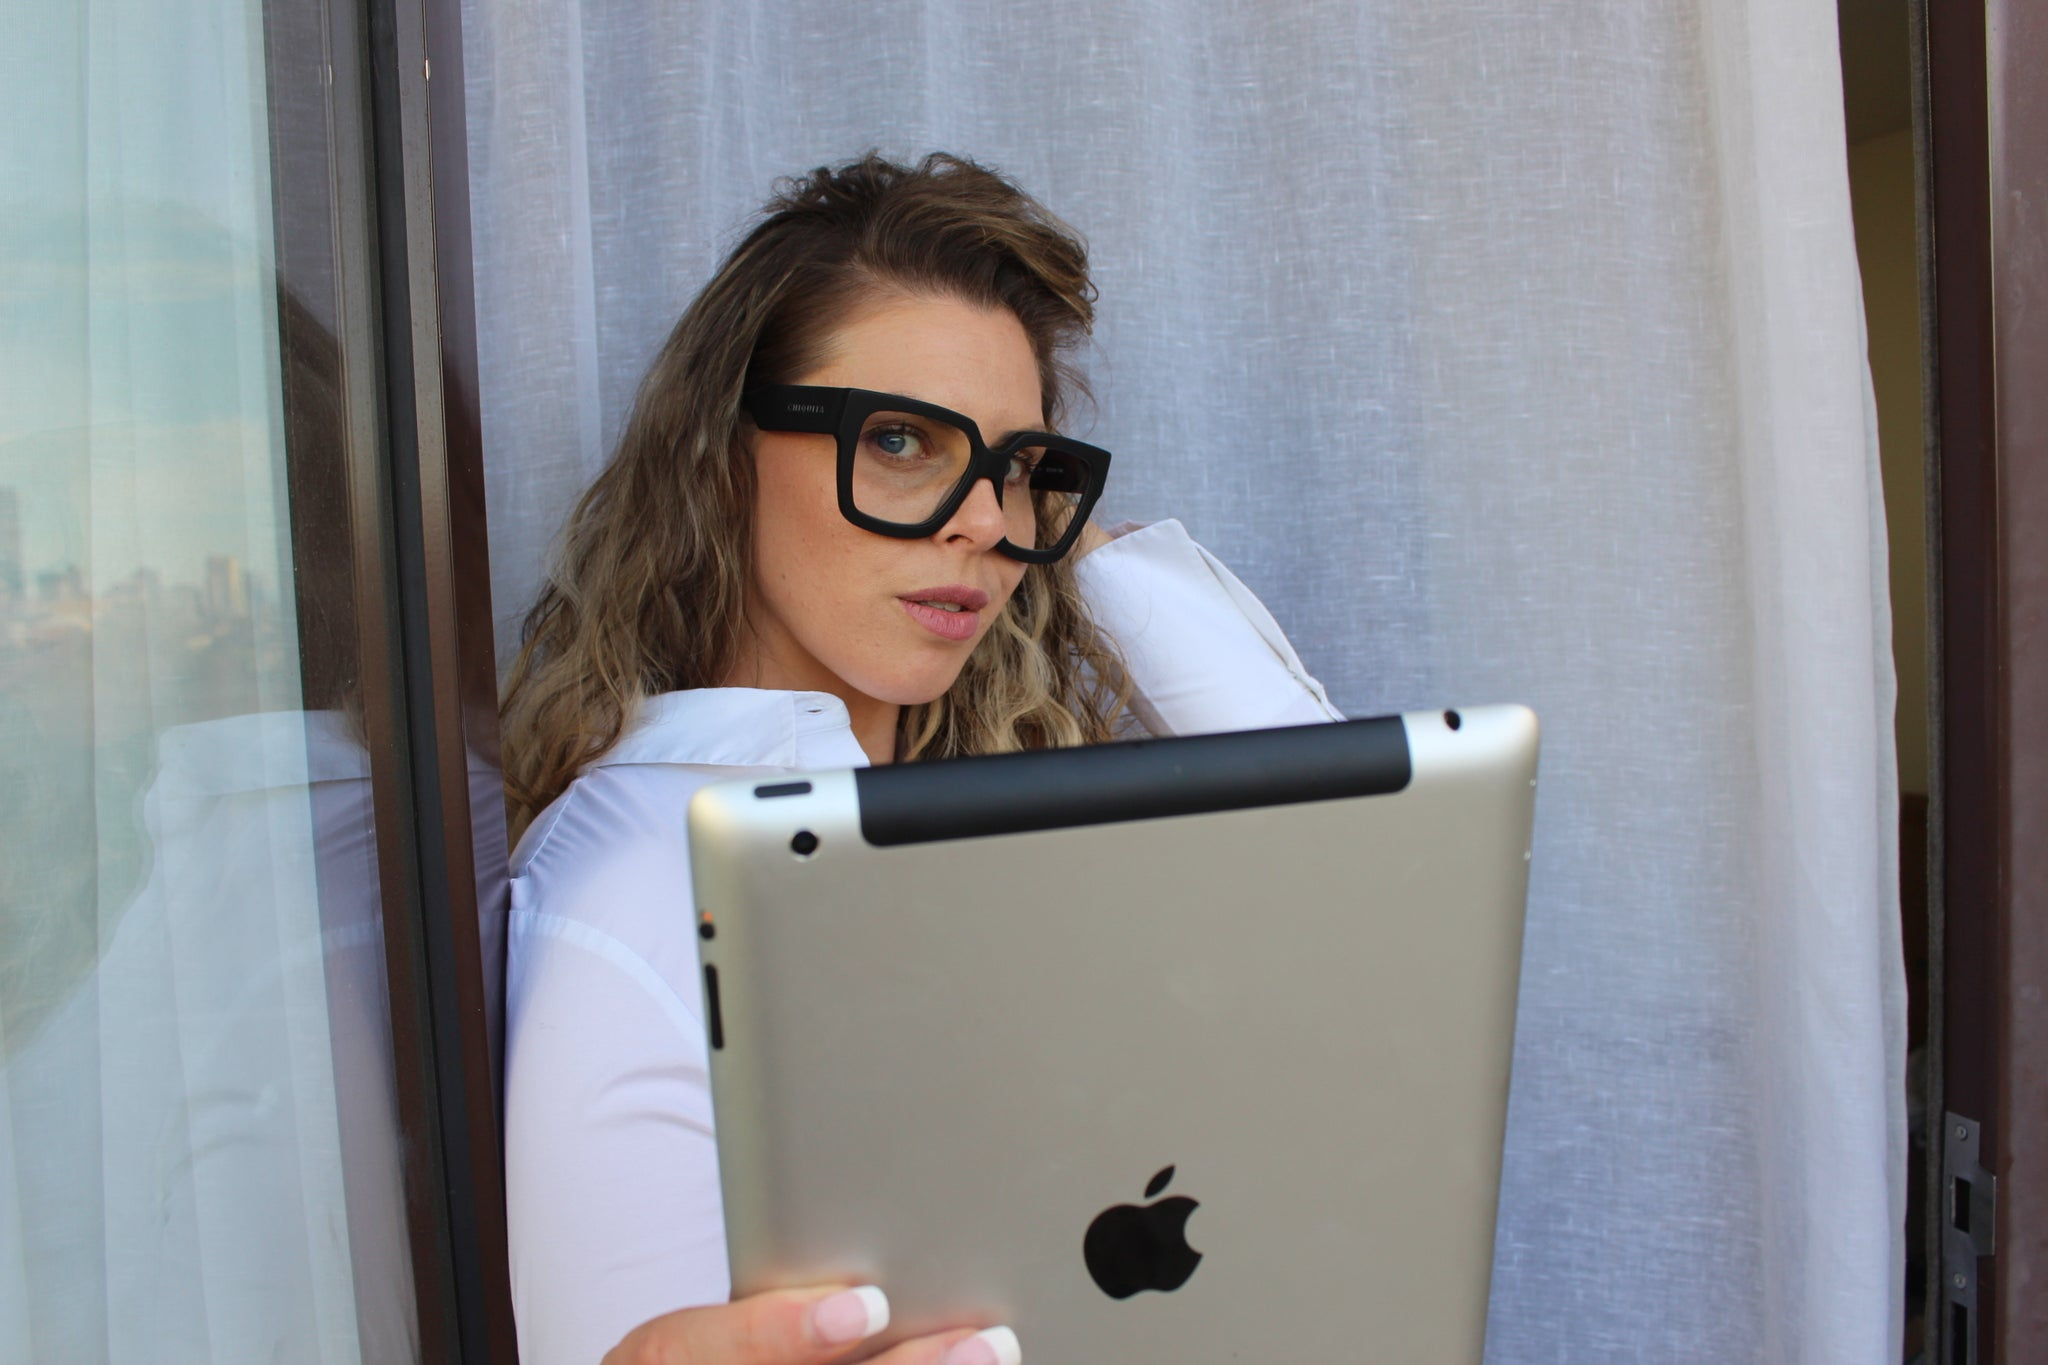 5 ways to still look good working from home